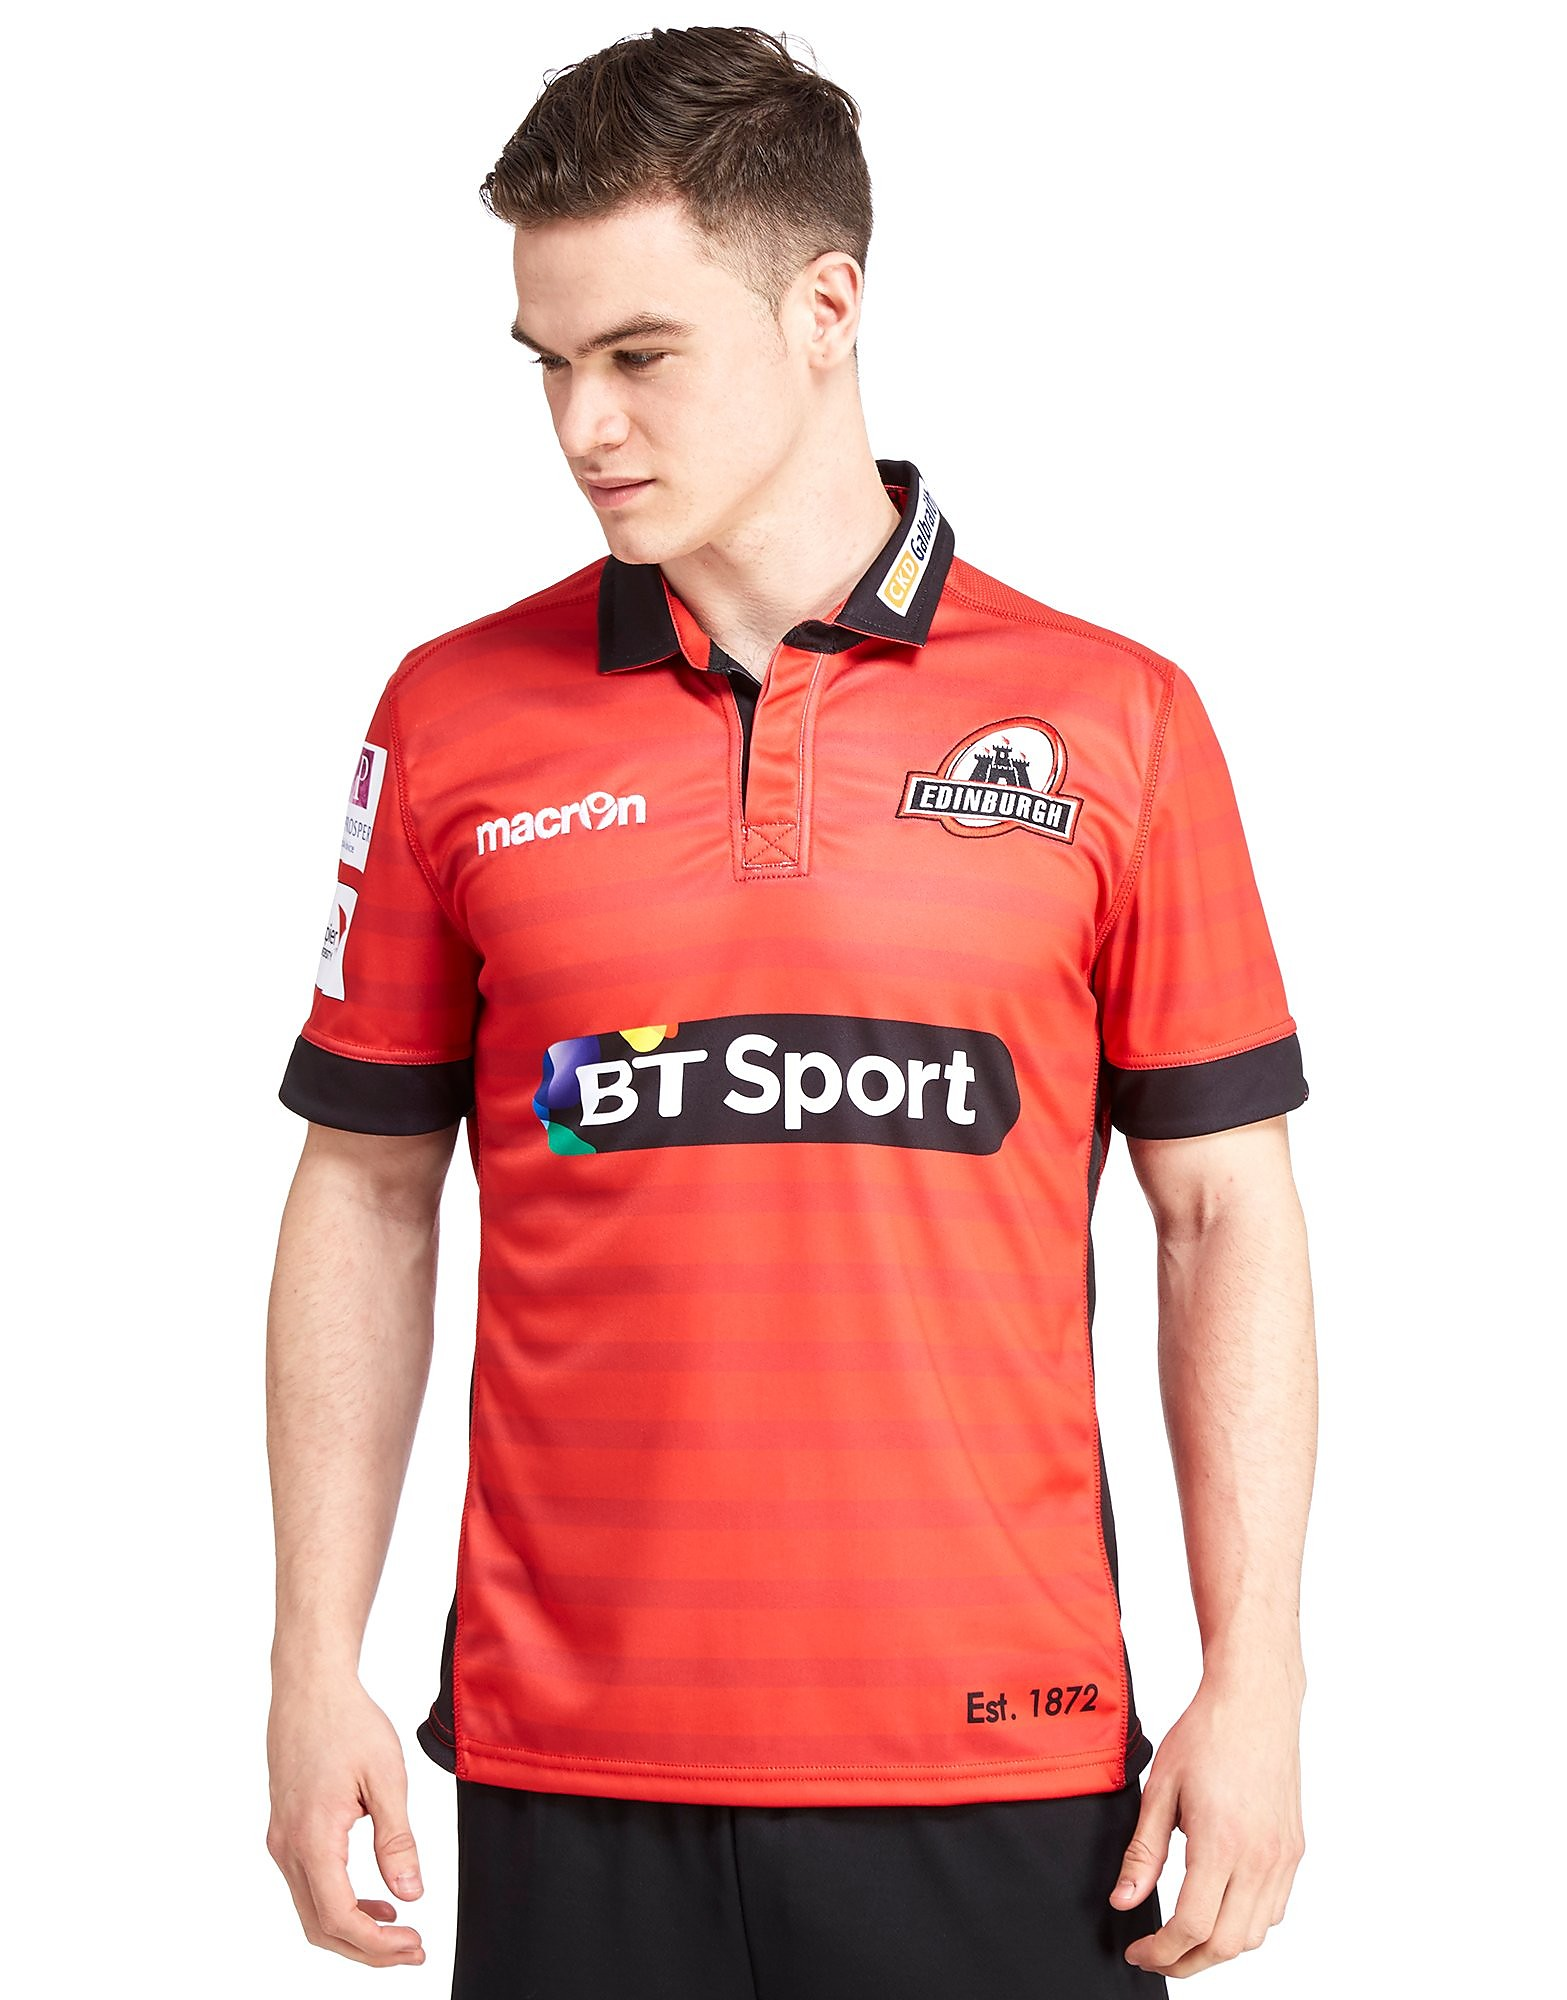 Macron Edinburgh RFU 2016/17 Away Shirt